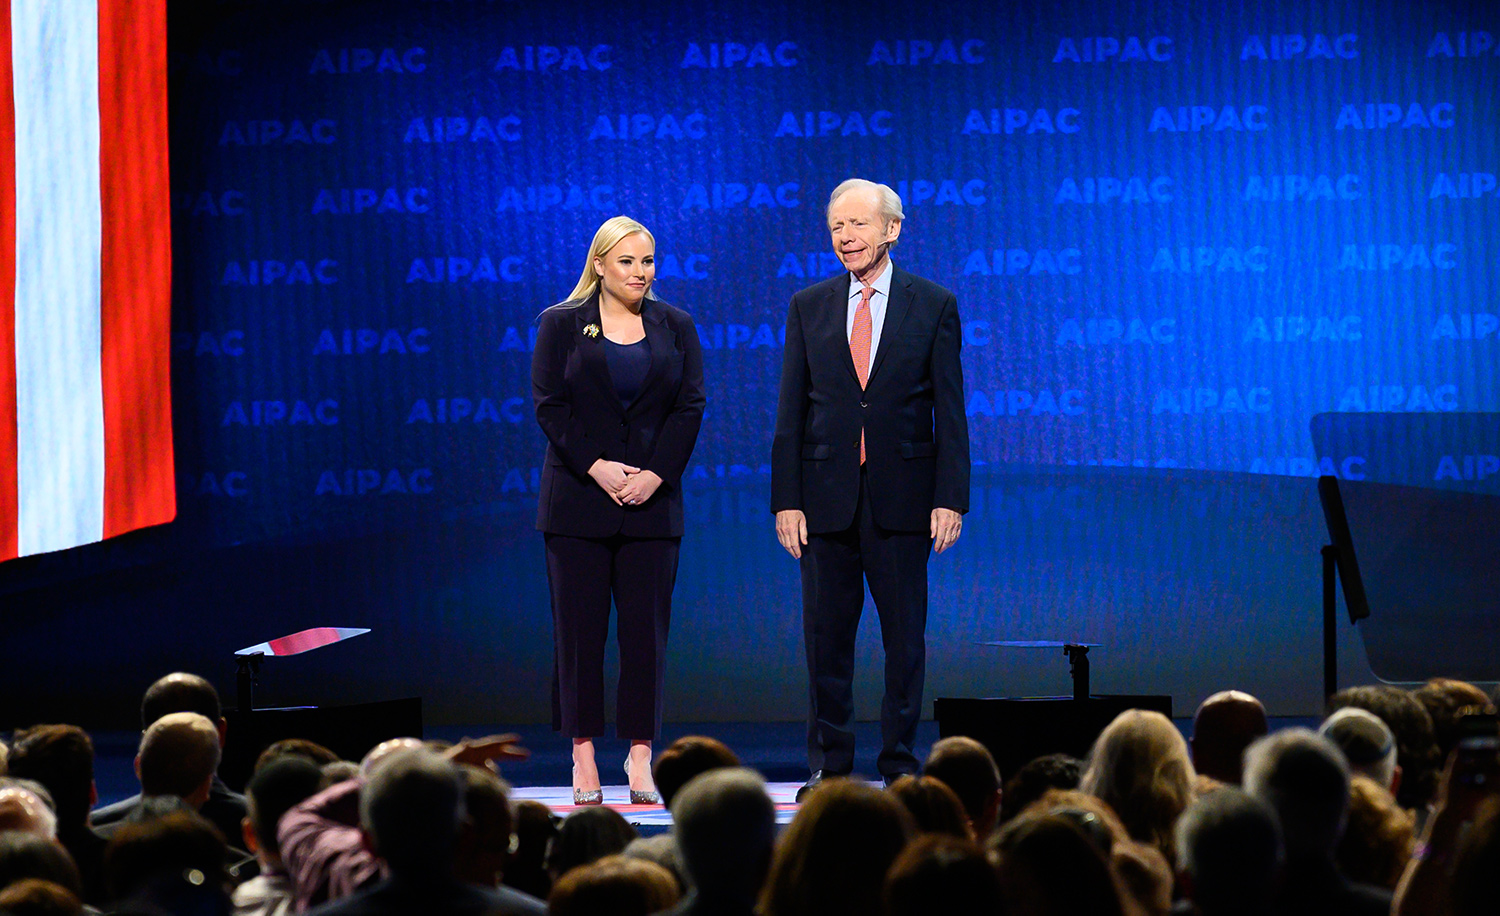 Meghan McCain and Joseph Lieberman at the AIPAC Policy Conference in March 2019. Michael Brochstein/SOPA Images/LightRocket via Getty Images.